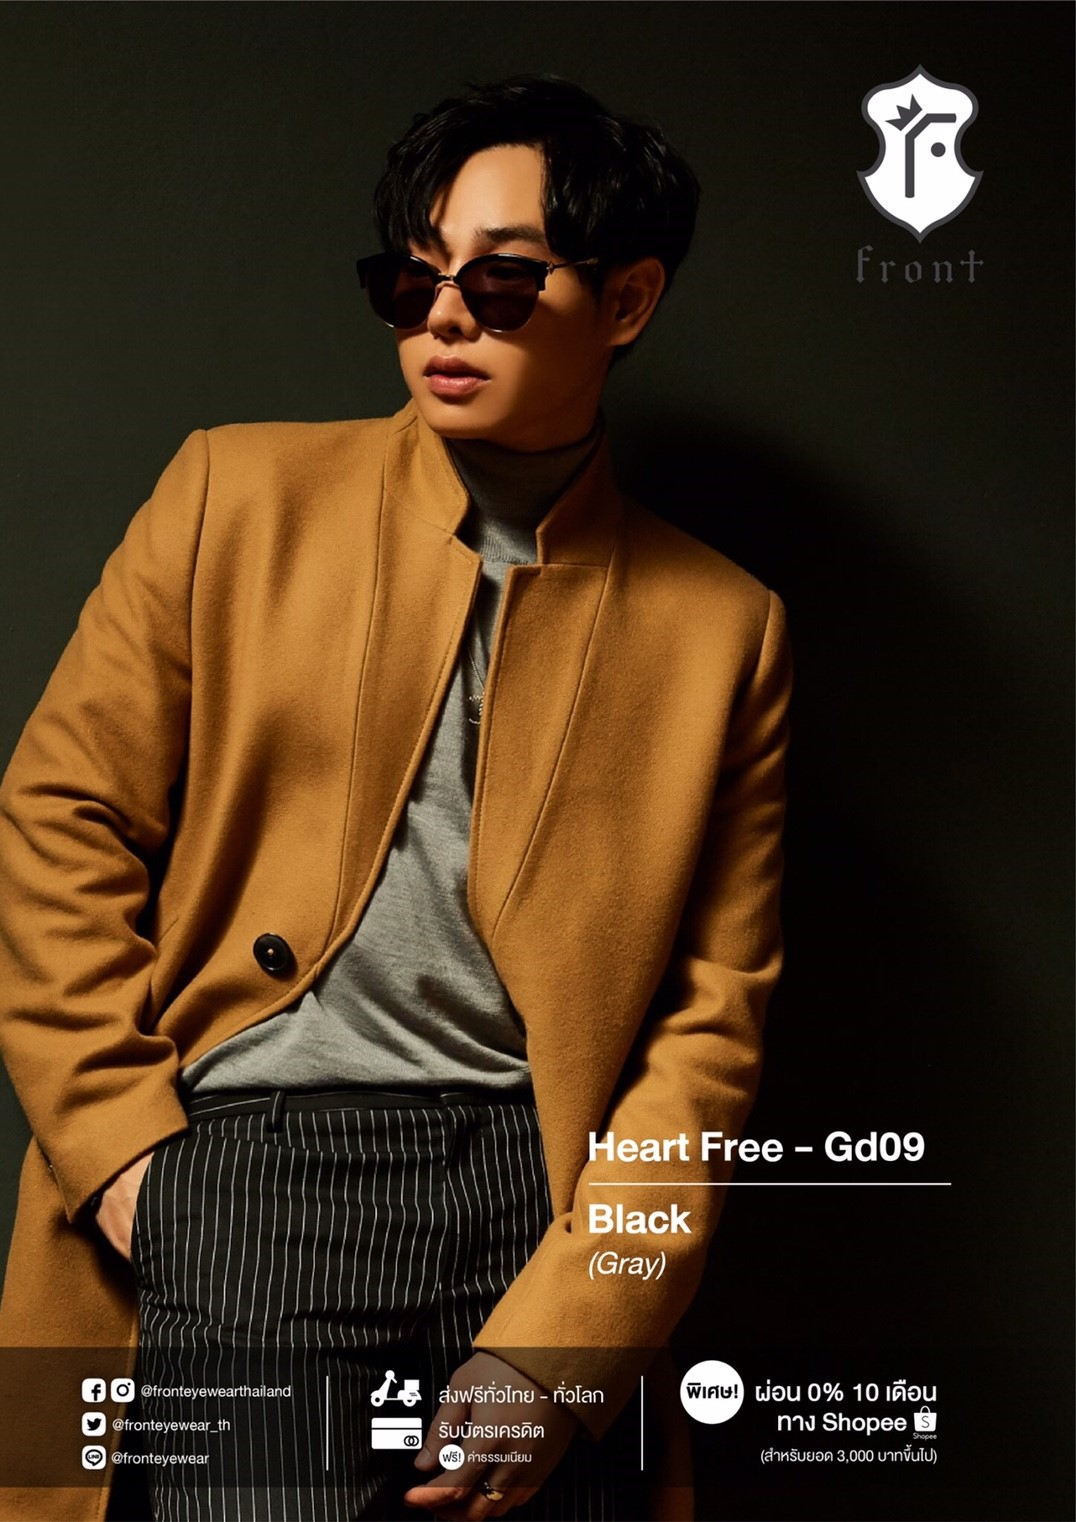 FrontxPeckPalit (A4)_190308_0003